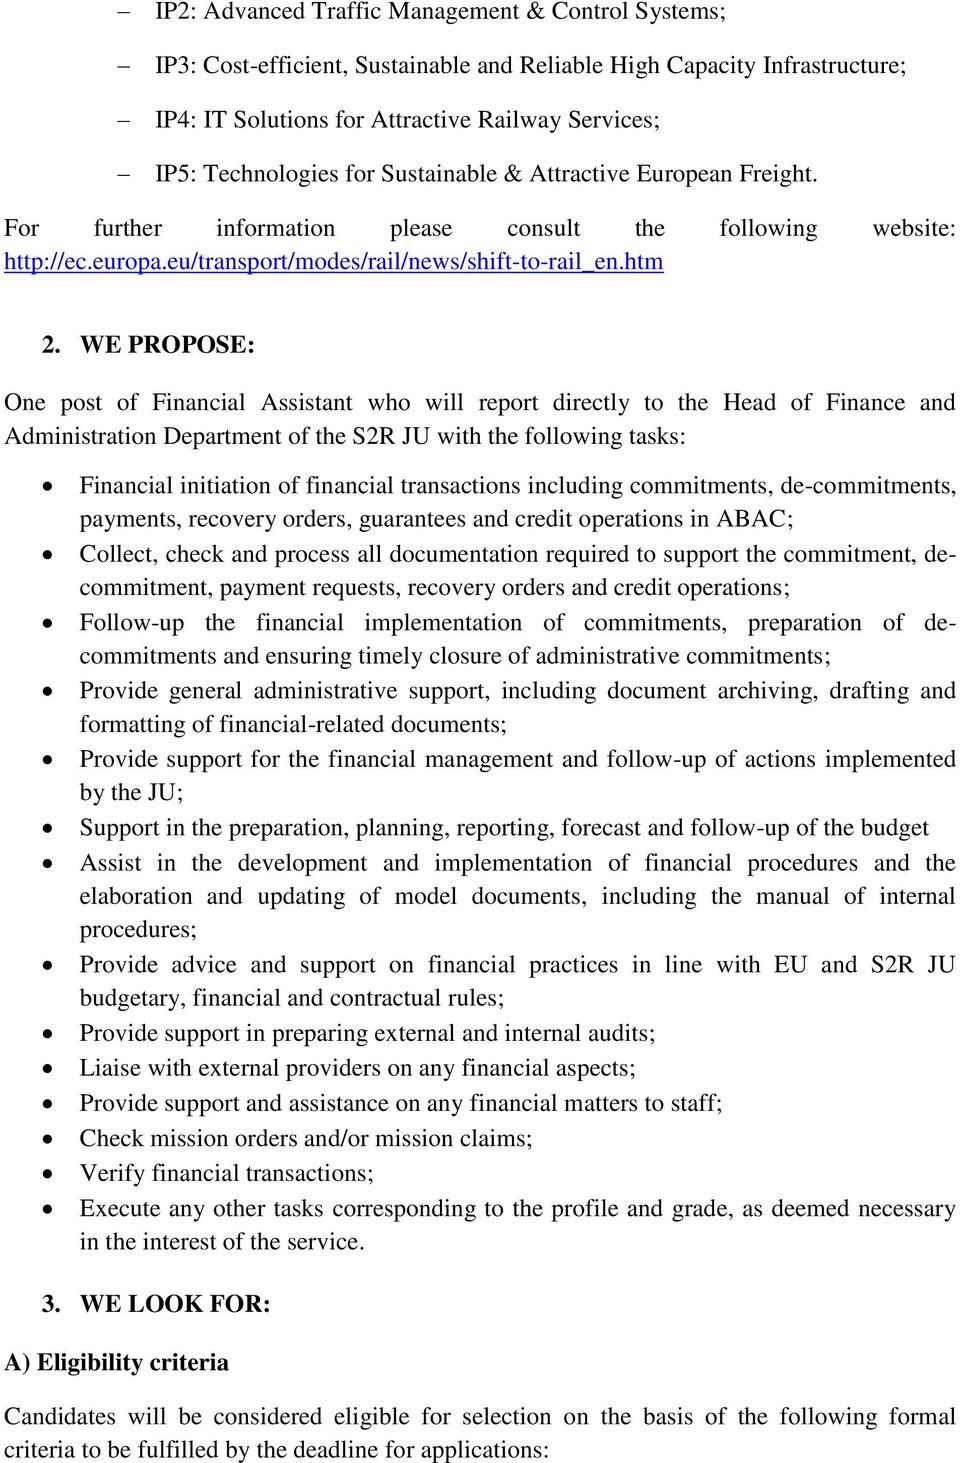 WE PROPOSE: One post of Financial Assistant who will report directly to the Head of Finance and Administration Department of the S2R JU with the following tasks: Financial initiation of financial